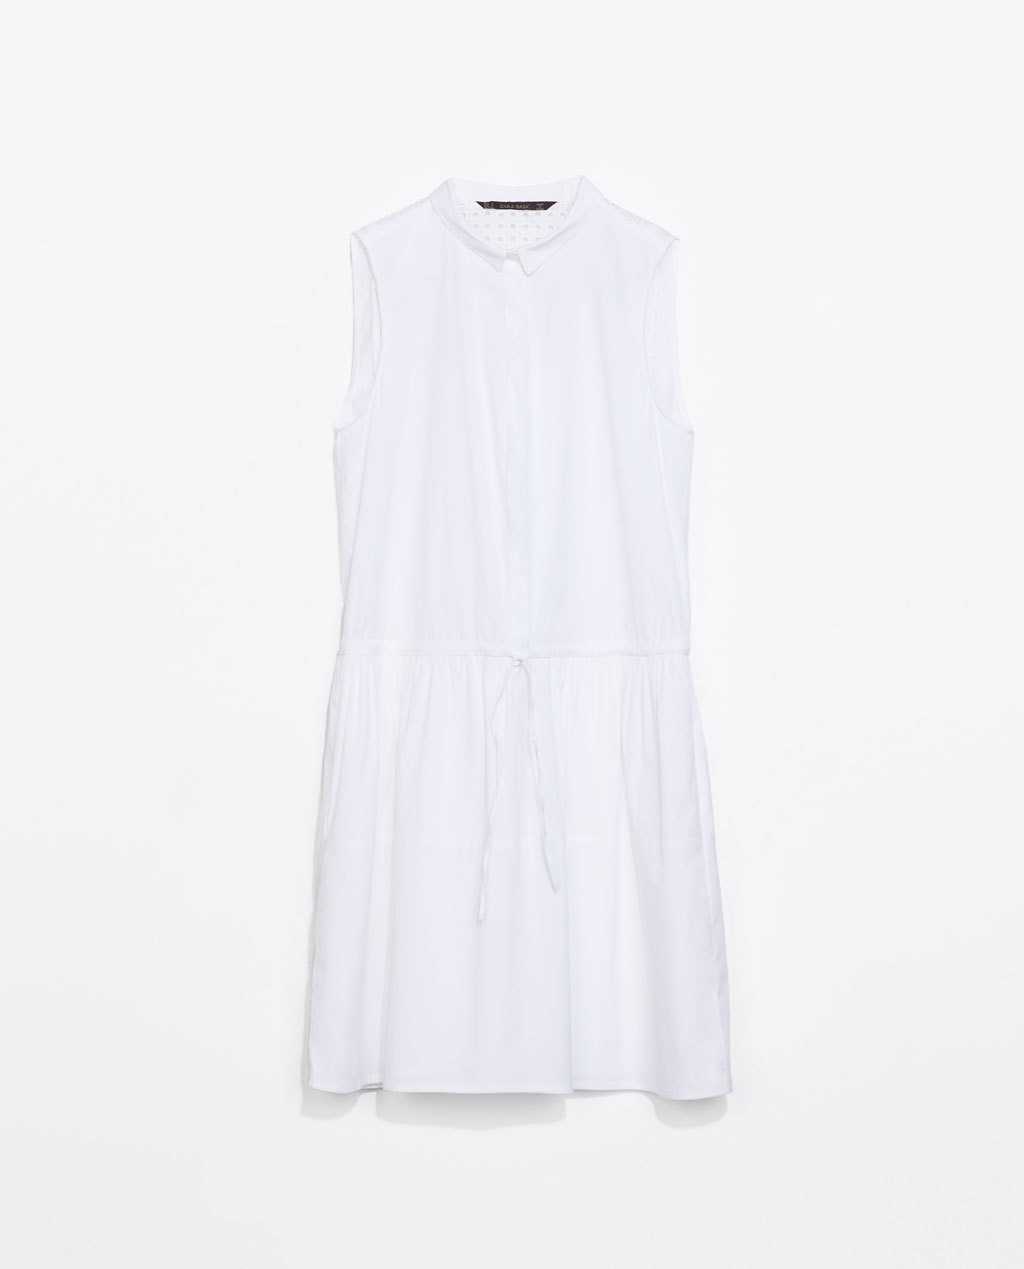 Dress With Cut Out Back - style: shirt; length: mid thigh; neckline: shirt collar/peter pan/zip with opening; fit: fitted at waist; pattern: plain; sleeve style: sleeveless; predominant colour: white; occasions: casual, holiday; fibres: cotton - 100%; sleeve length: sleeveless; texture group: cotton feel fabrics; hip detail: ruffles/tiers/tie detail at hip; pattern type: fabric; season: s/s 2014